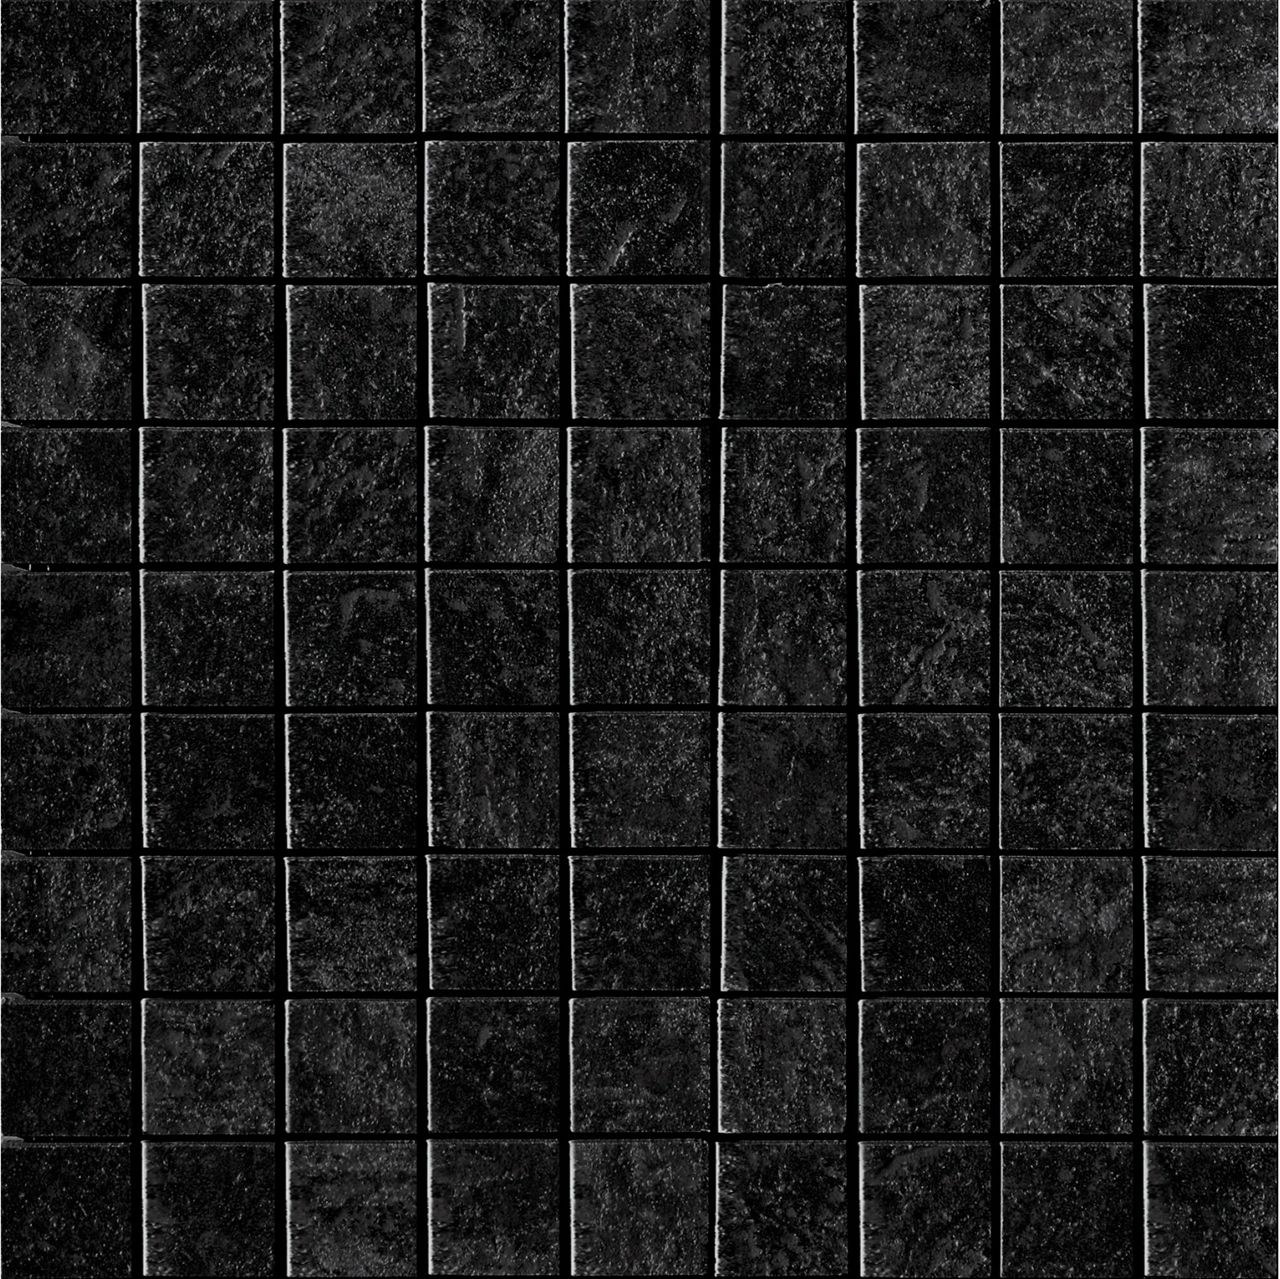 Black tile floor texture home design plan show details for imola colosseum black square mosaic wall floor tile 300x300mm dailygadgetfo Choice Image